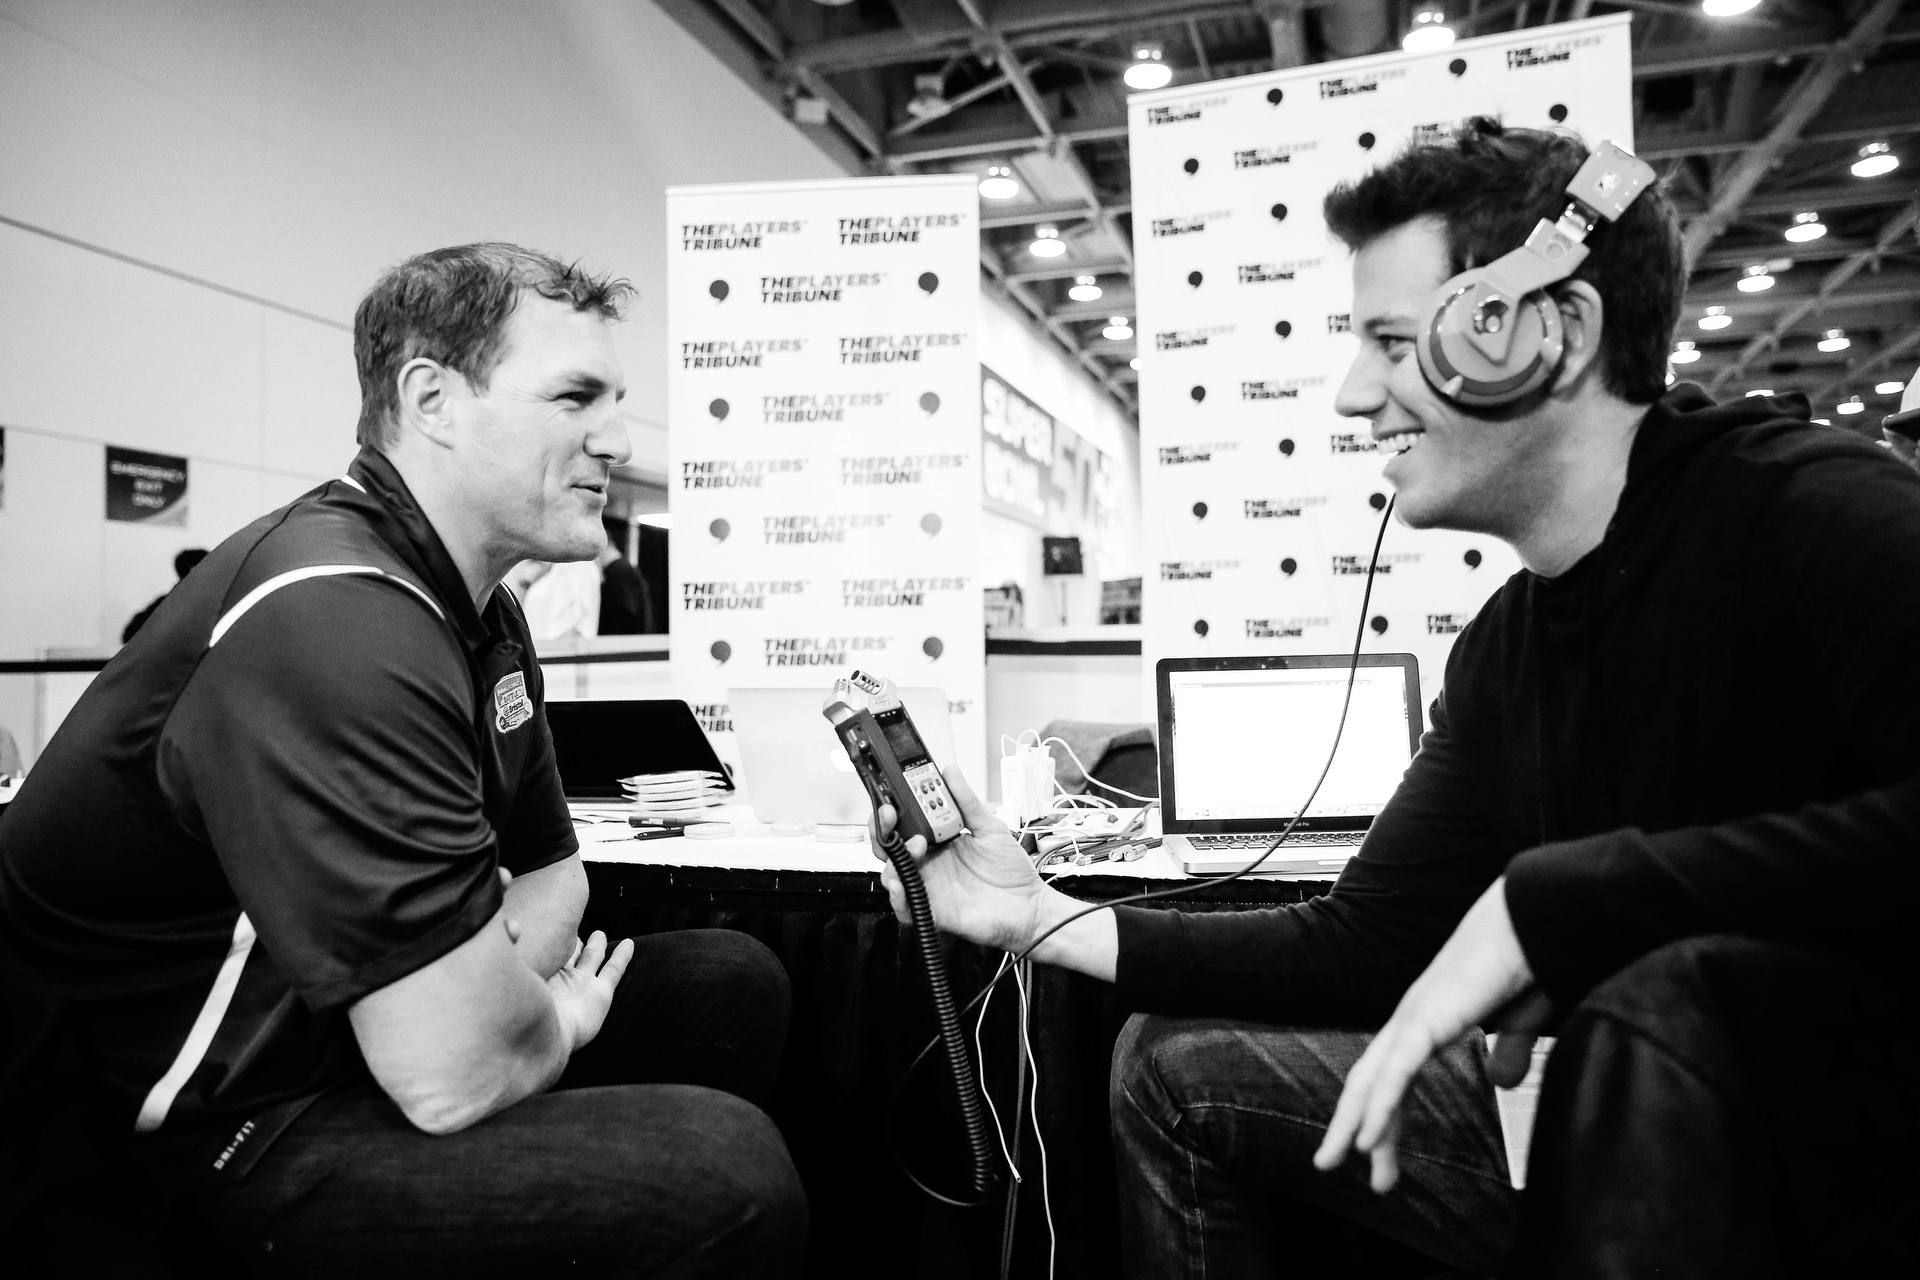 Dallas Cowboys tight end Jason Witten stopped by the booth.